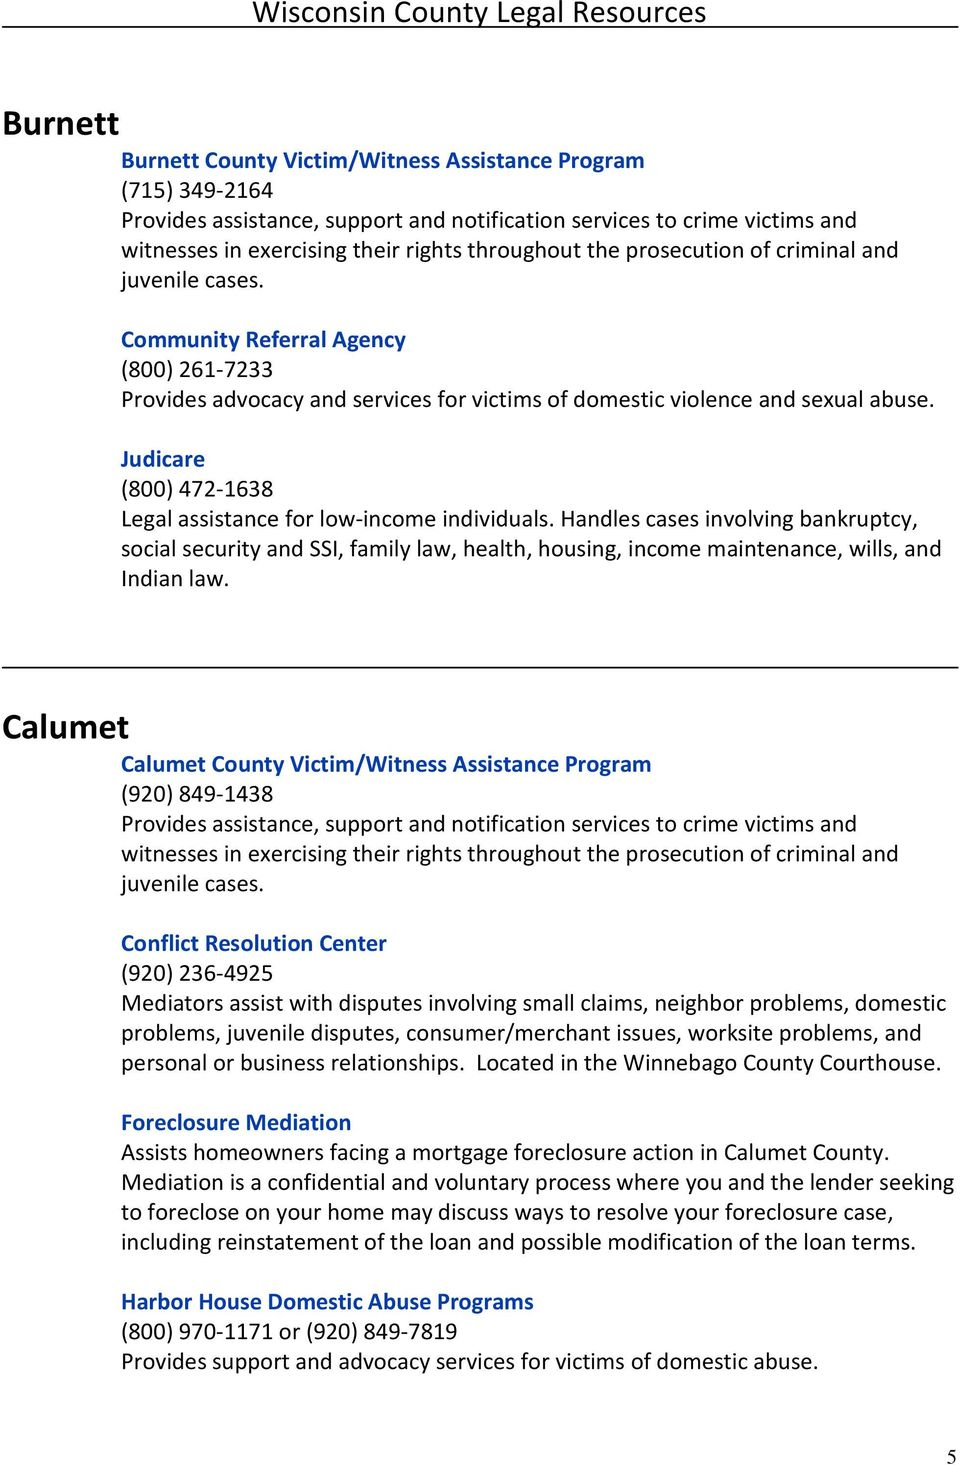 Calumet Calumet County Victim/Witness Assistance Program (920) 849-1438 Conflict Resolution Center (920) 236-4925 Mediators assist with disputes involving small claims, neighbor problems, domestic